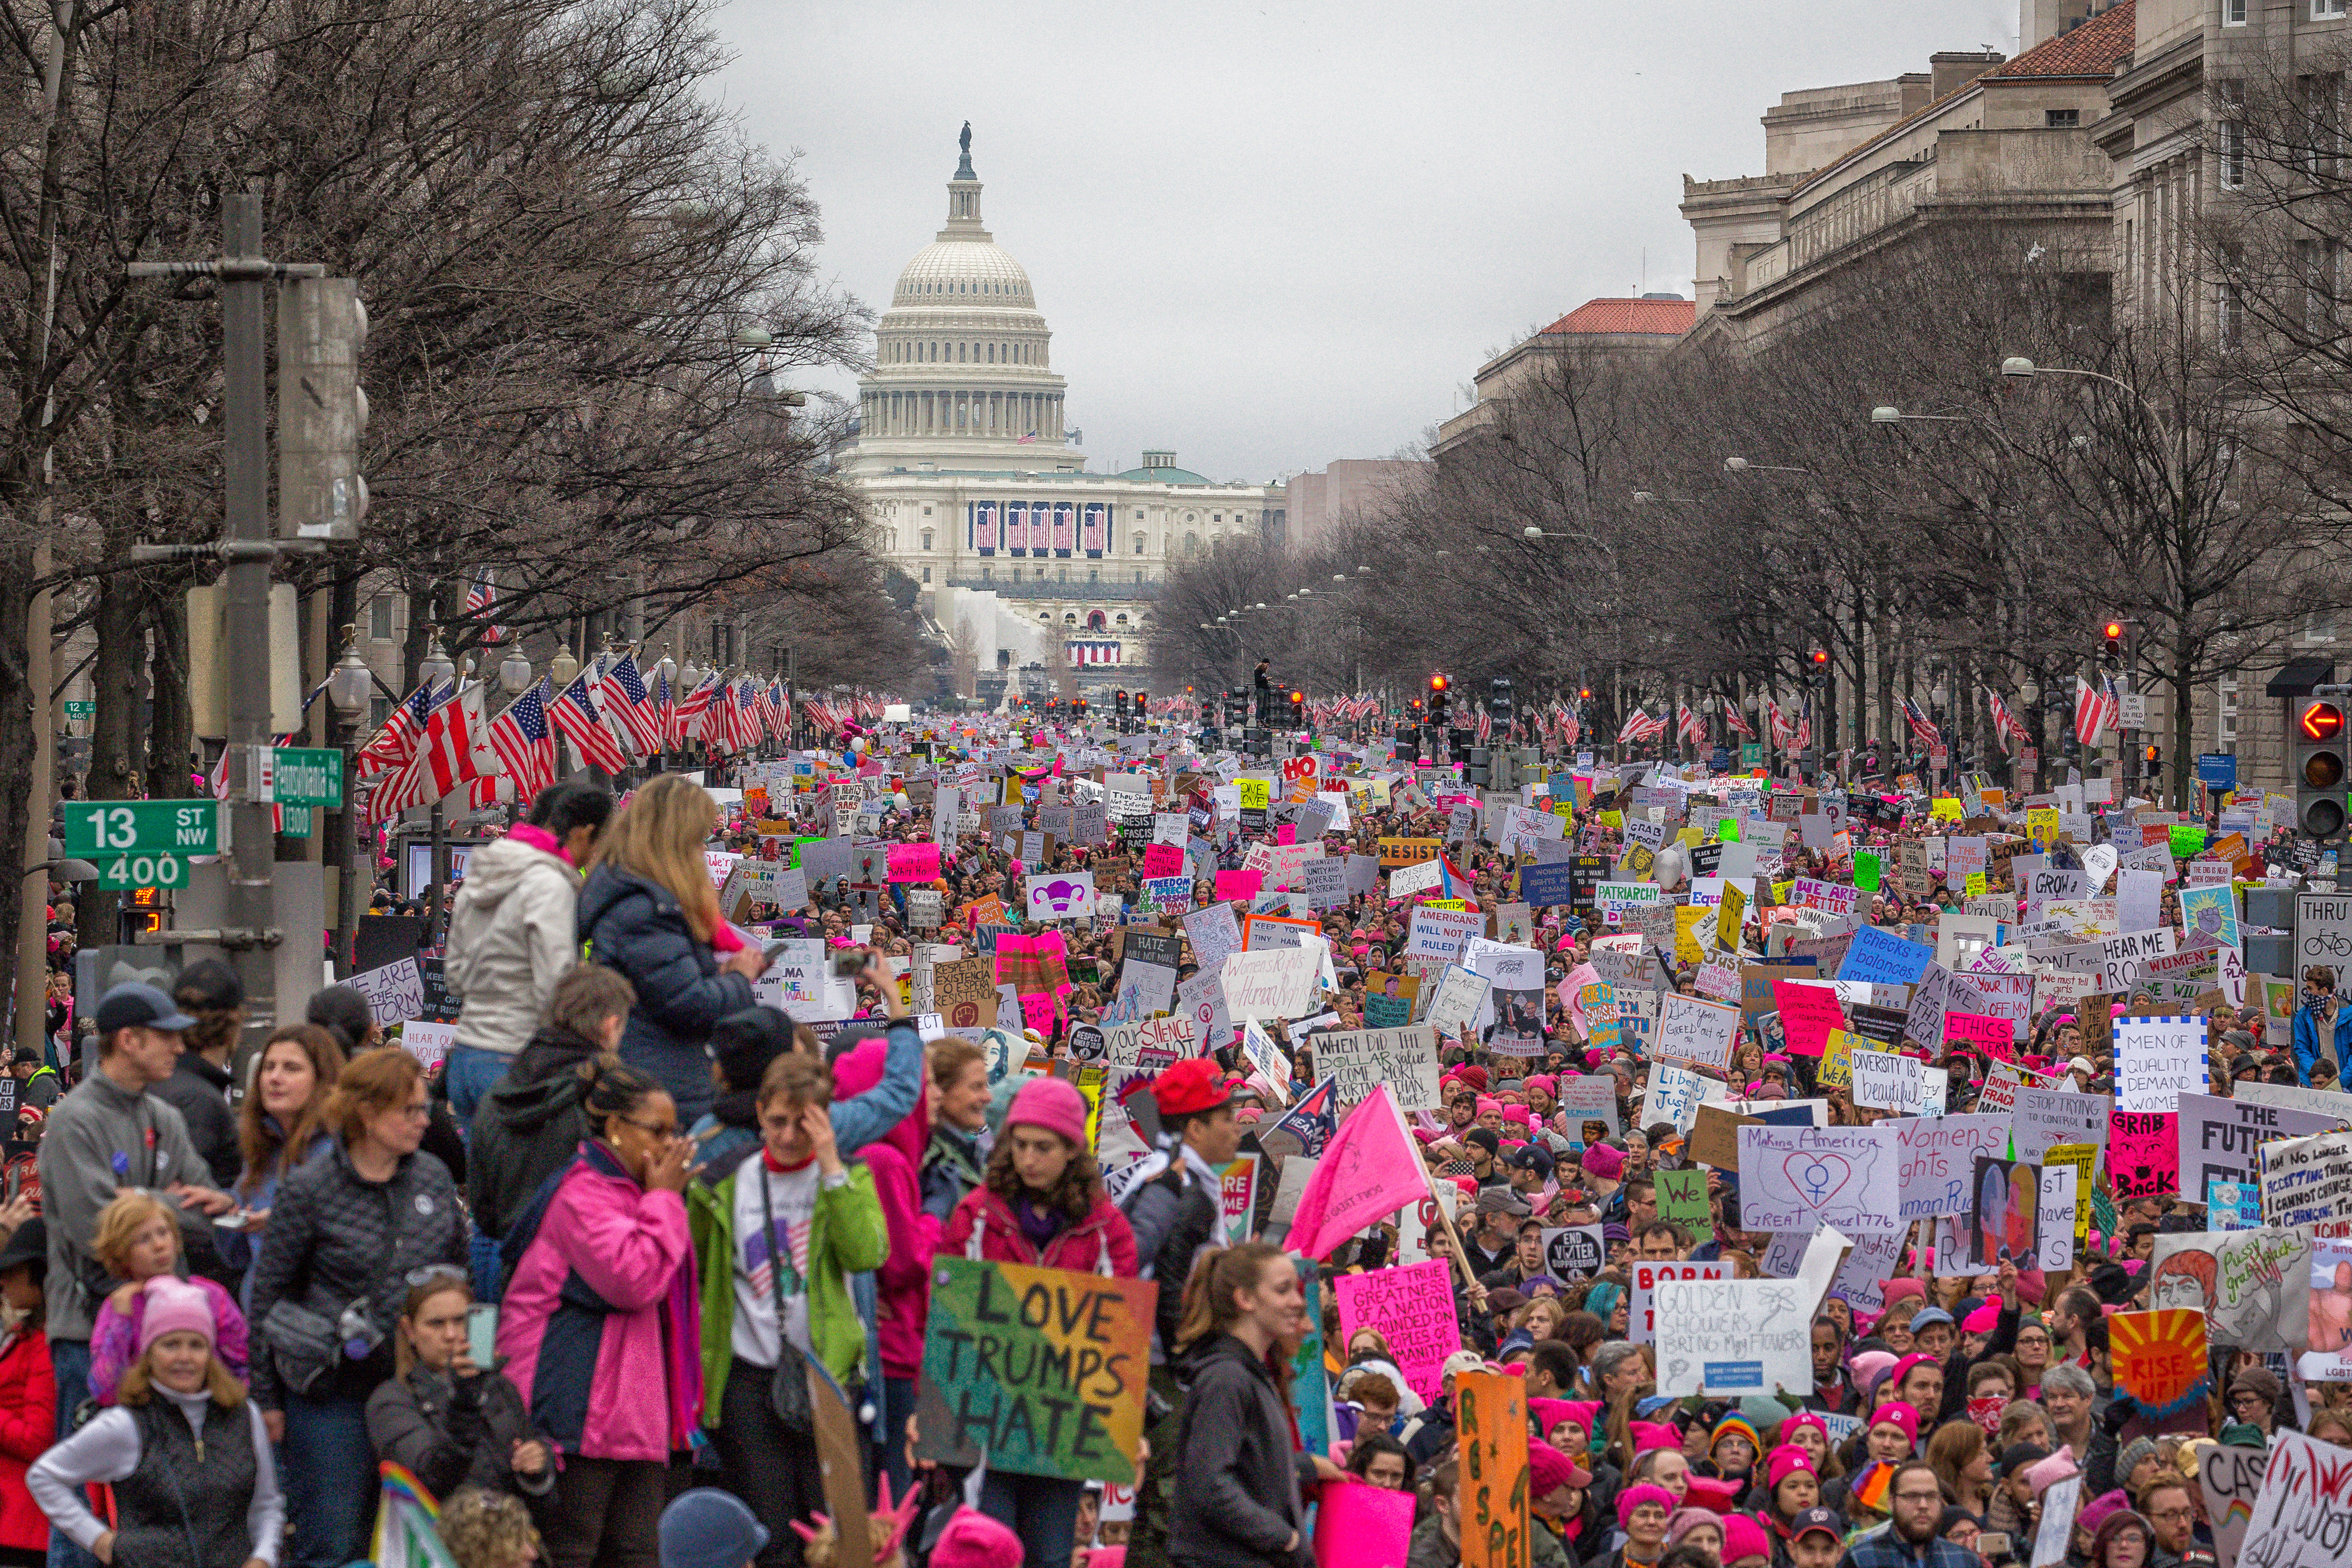 graphic about Women's March Printable Signs referred to as 2017 Womens March - Wikipedia